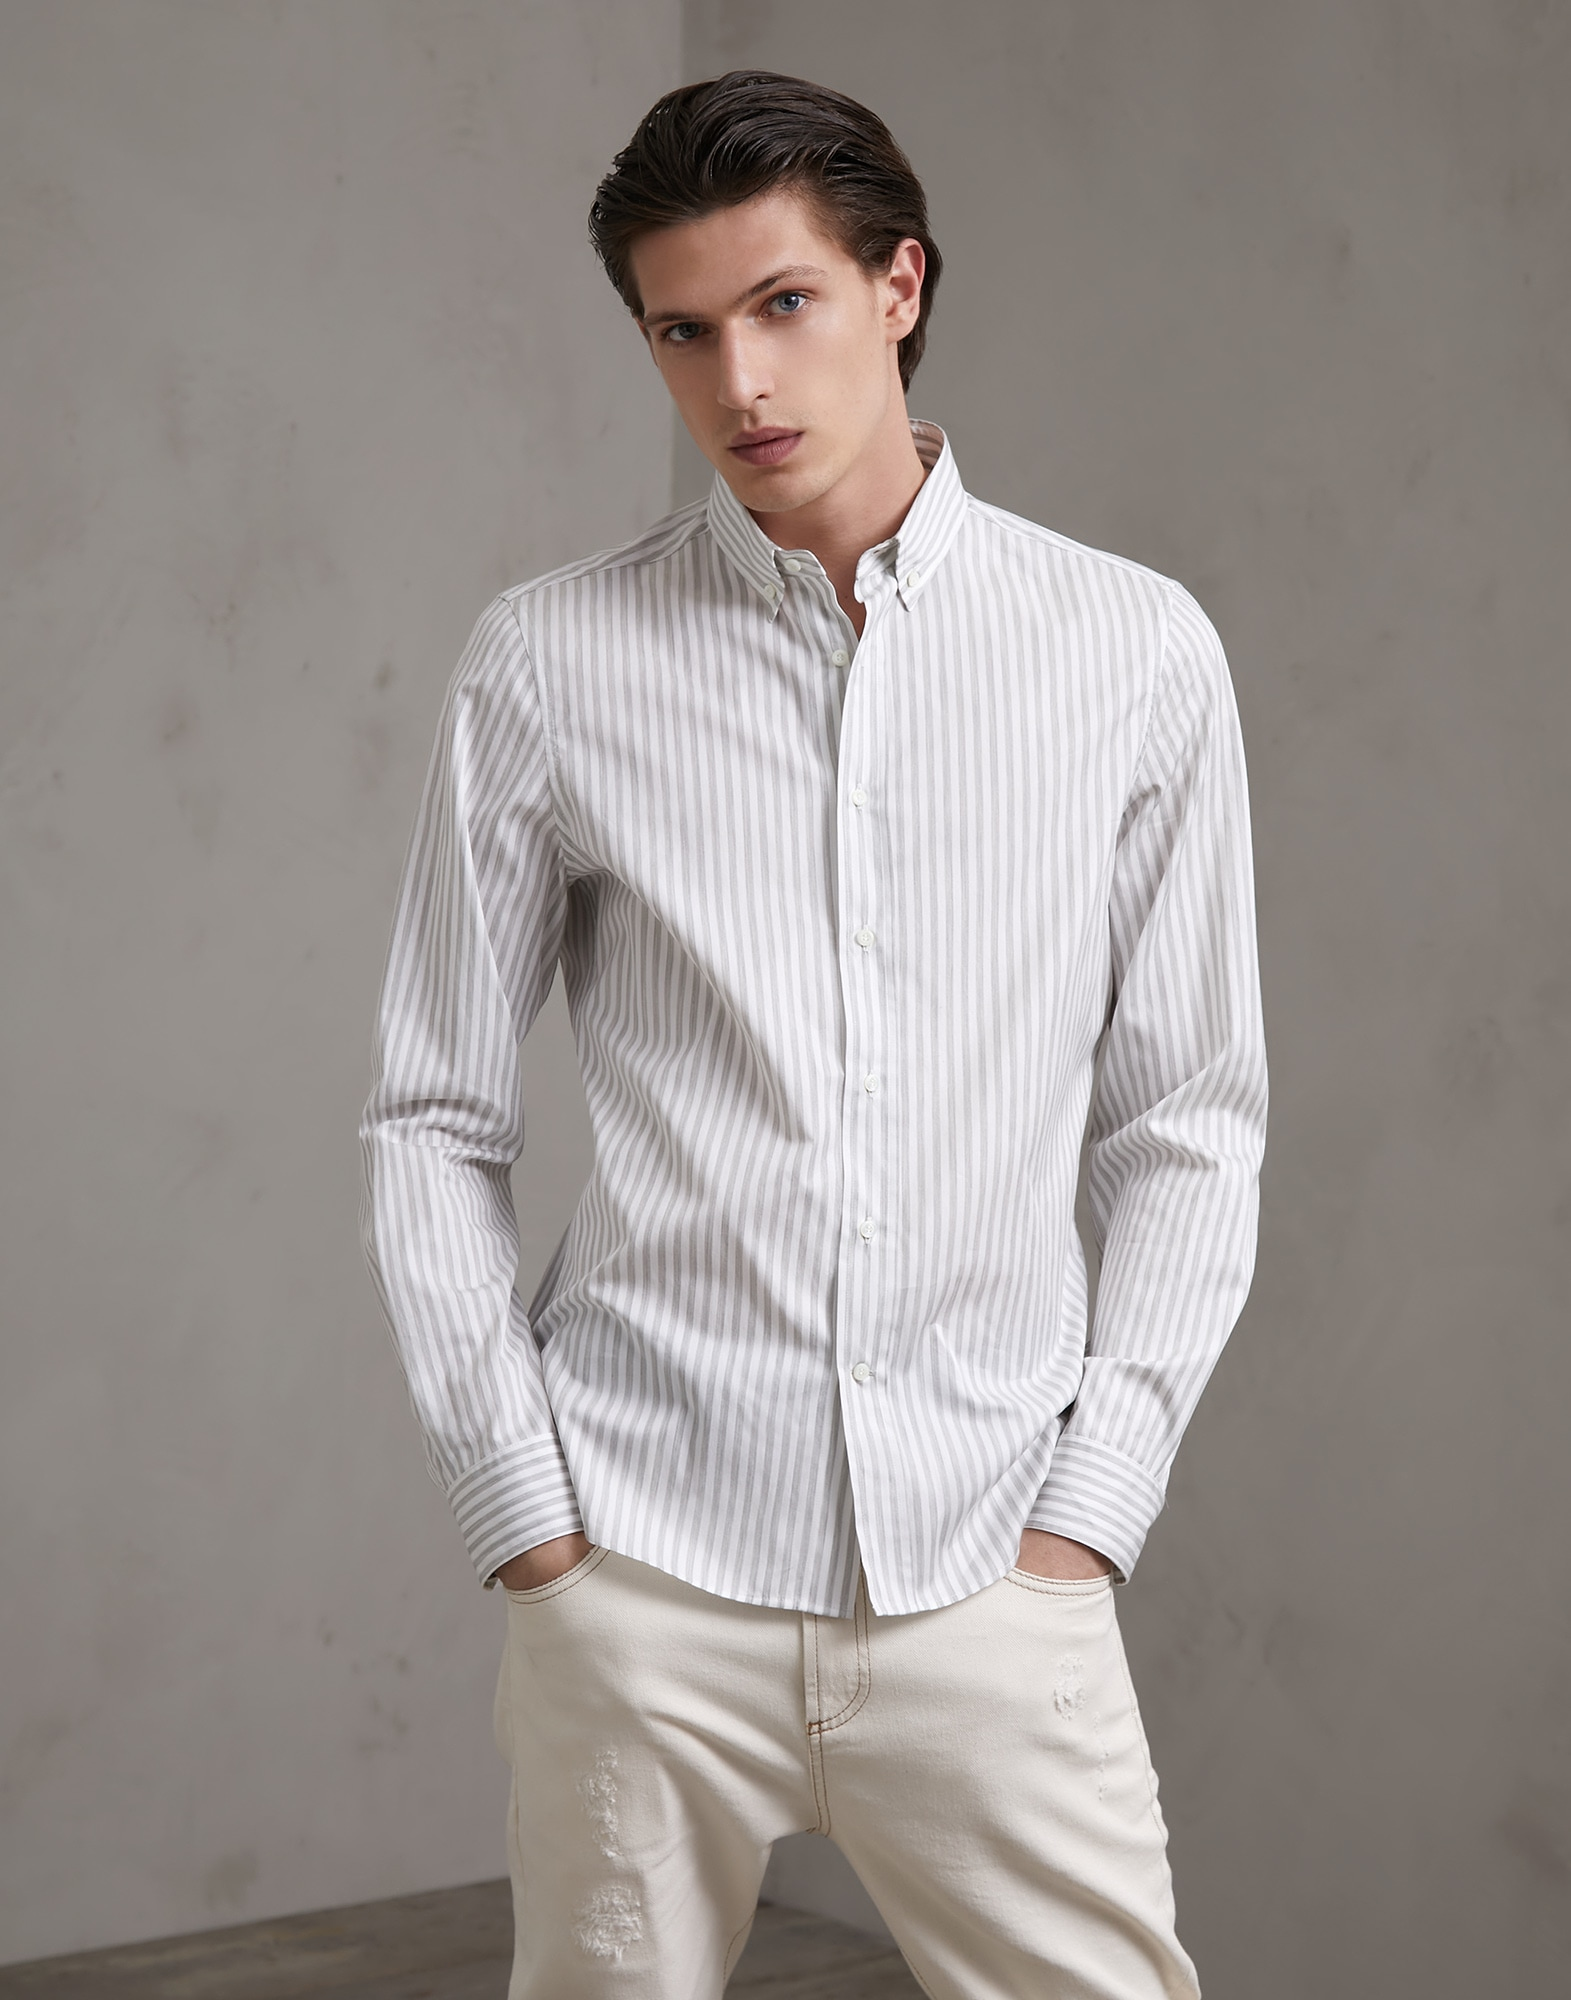 Button-Down-Hemd Hellgrau Herren 1 - Brunello Cucinelli